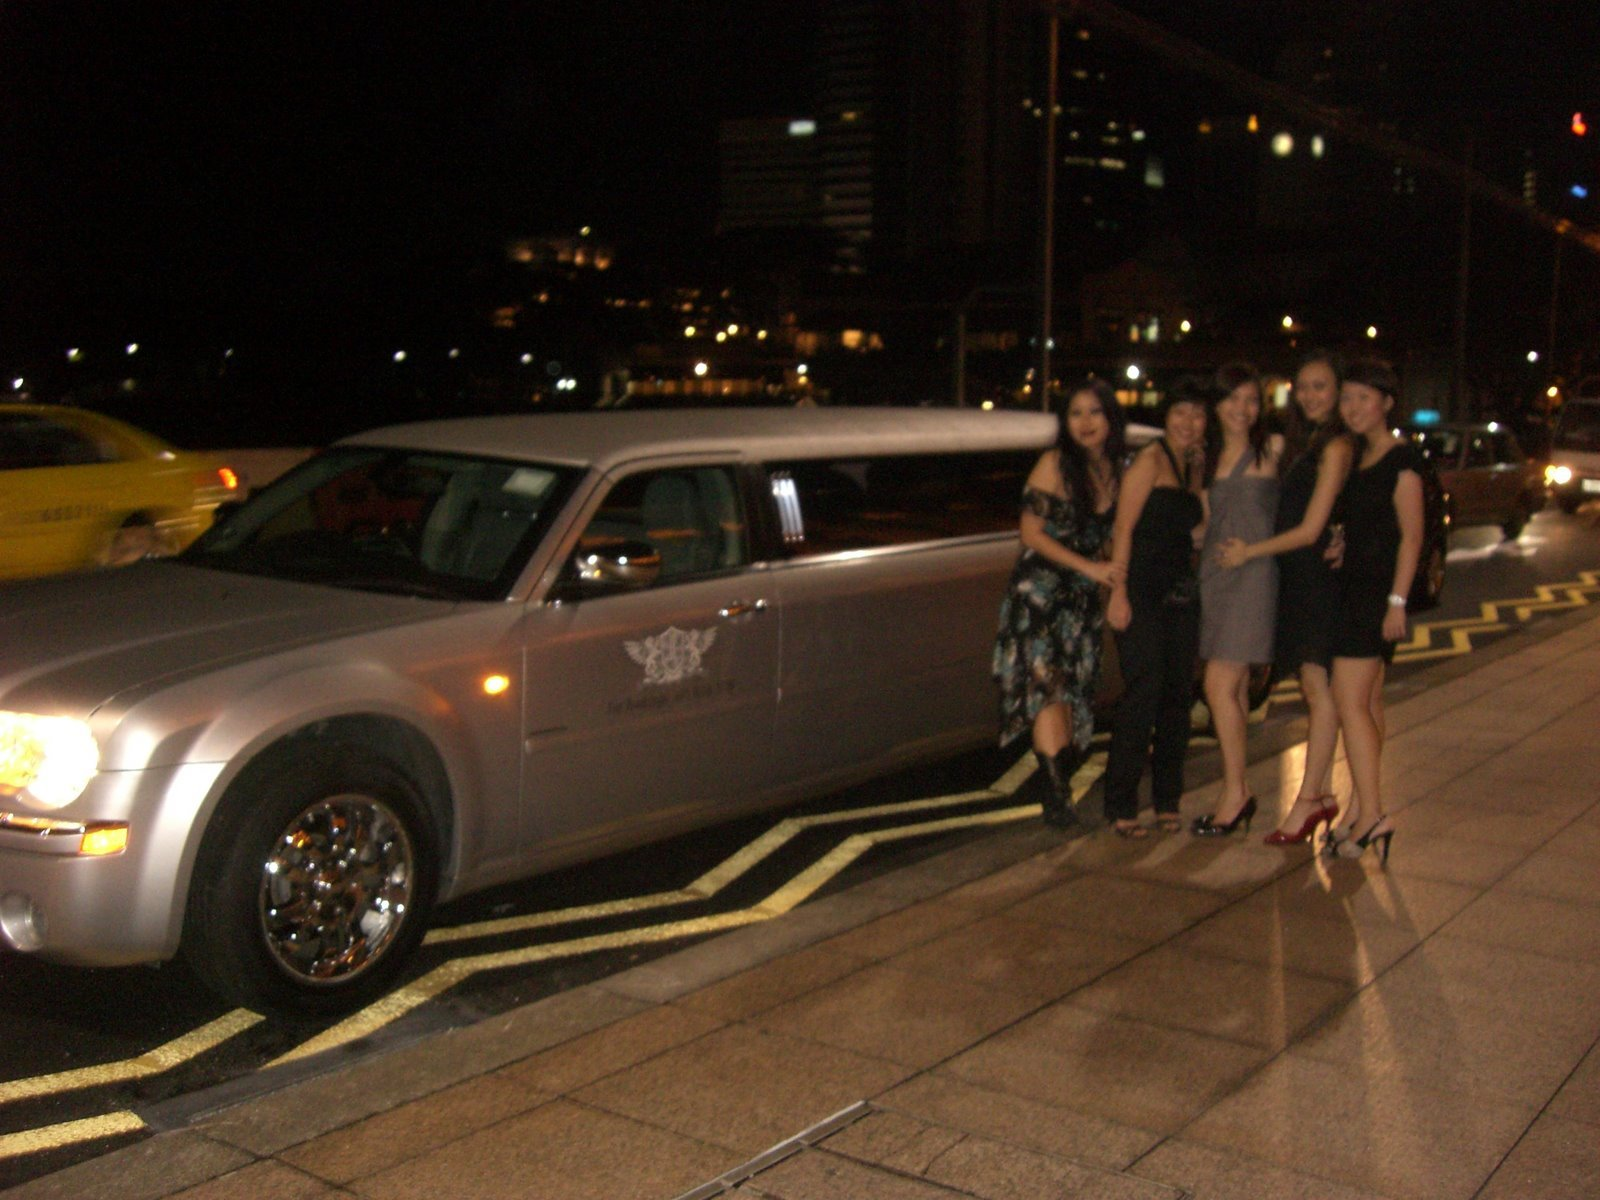 Our stretch limo... yours truly in the scrappy red heels!